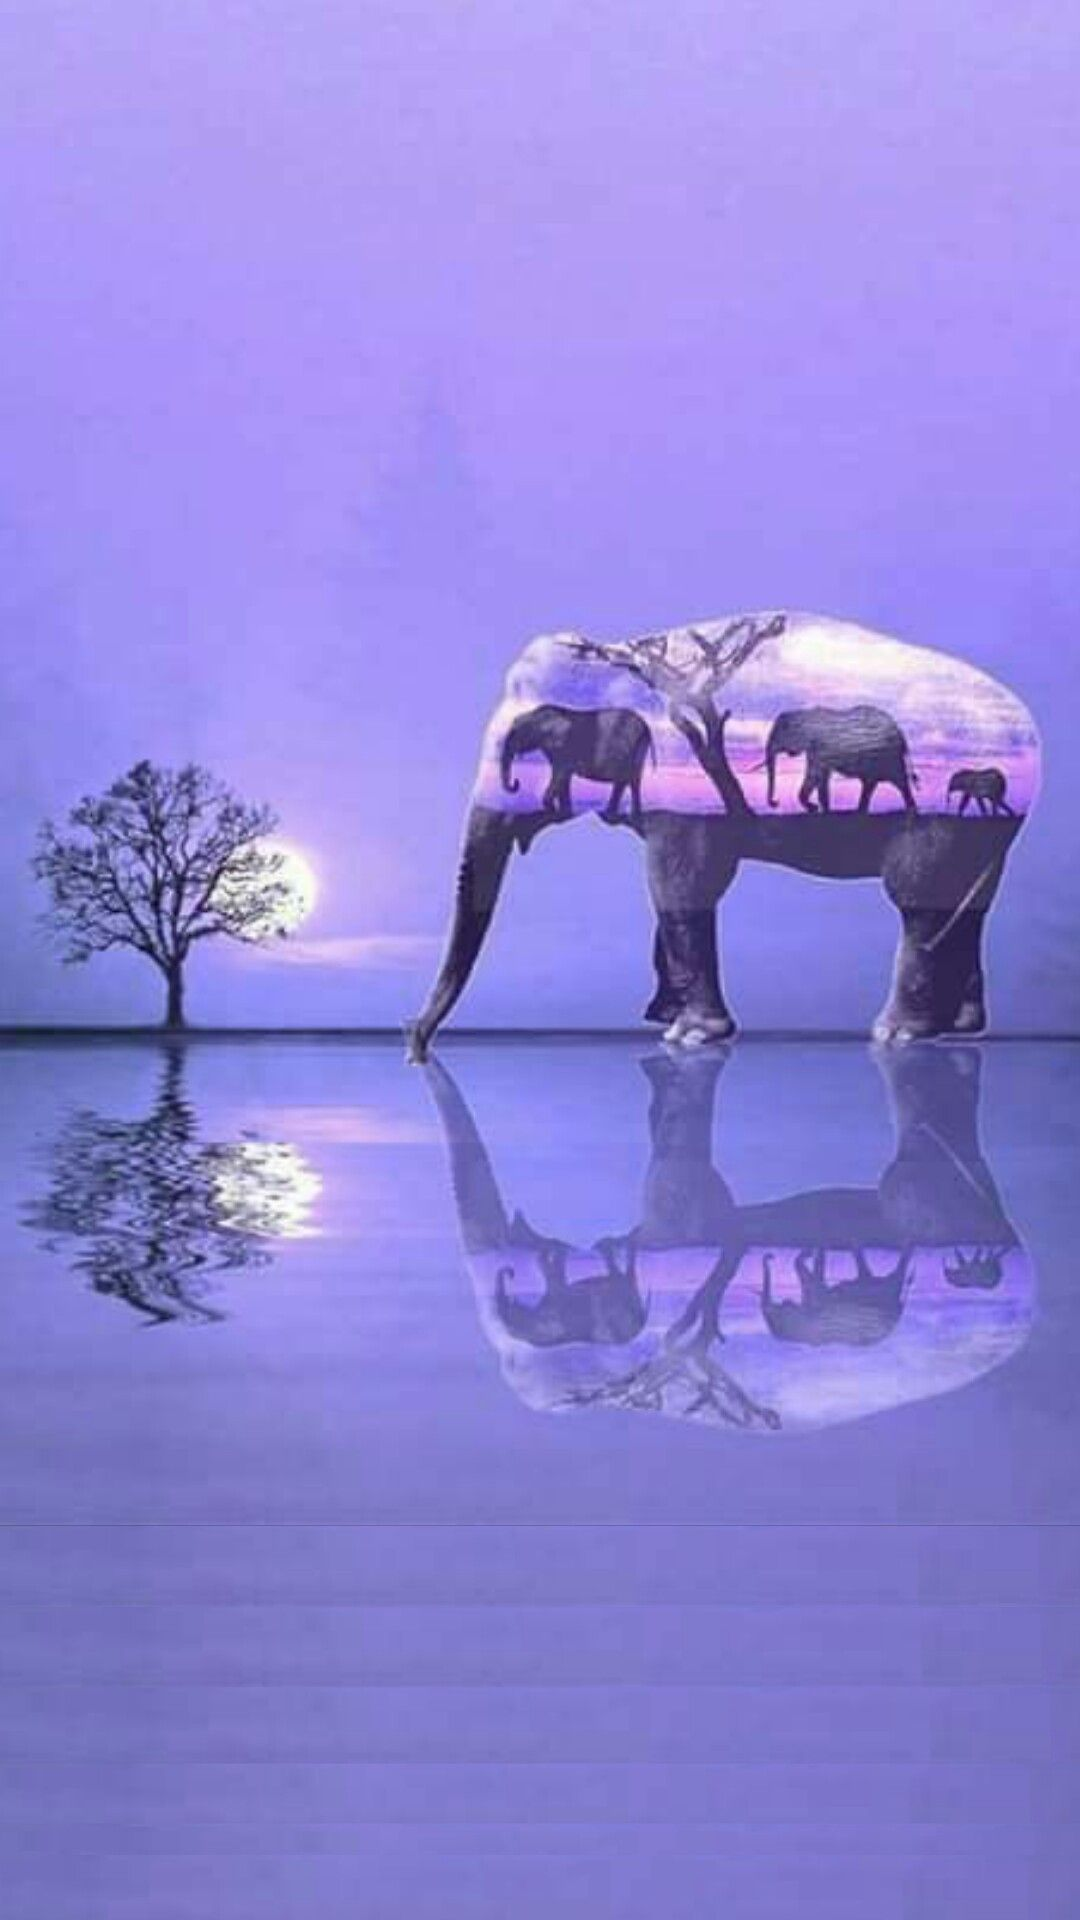 Hello This Is So Beautiful Would Love To Know Where You Got It From Thanks Marilyn Merillion On Pi In 2020 Elephant Artwork Elephant Pictures Elephant Wallpaper